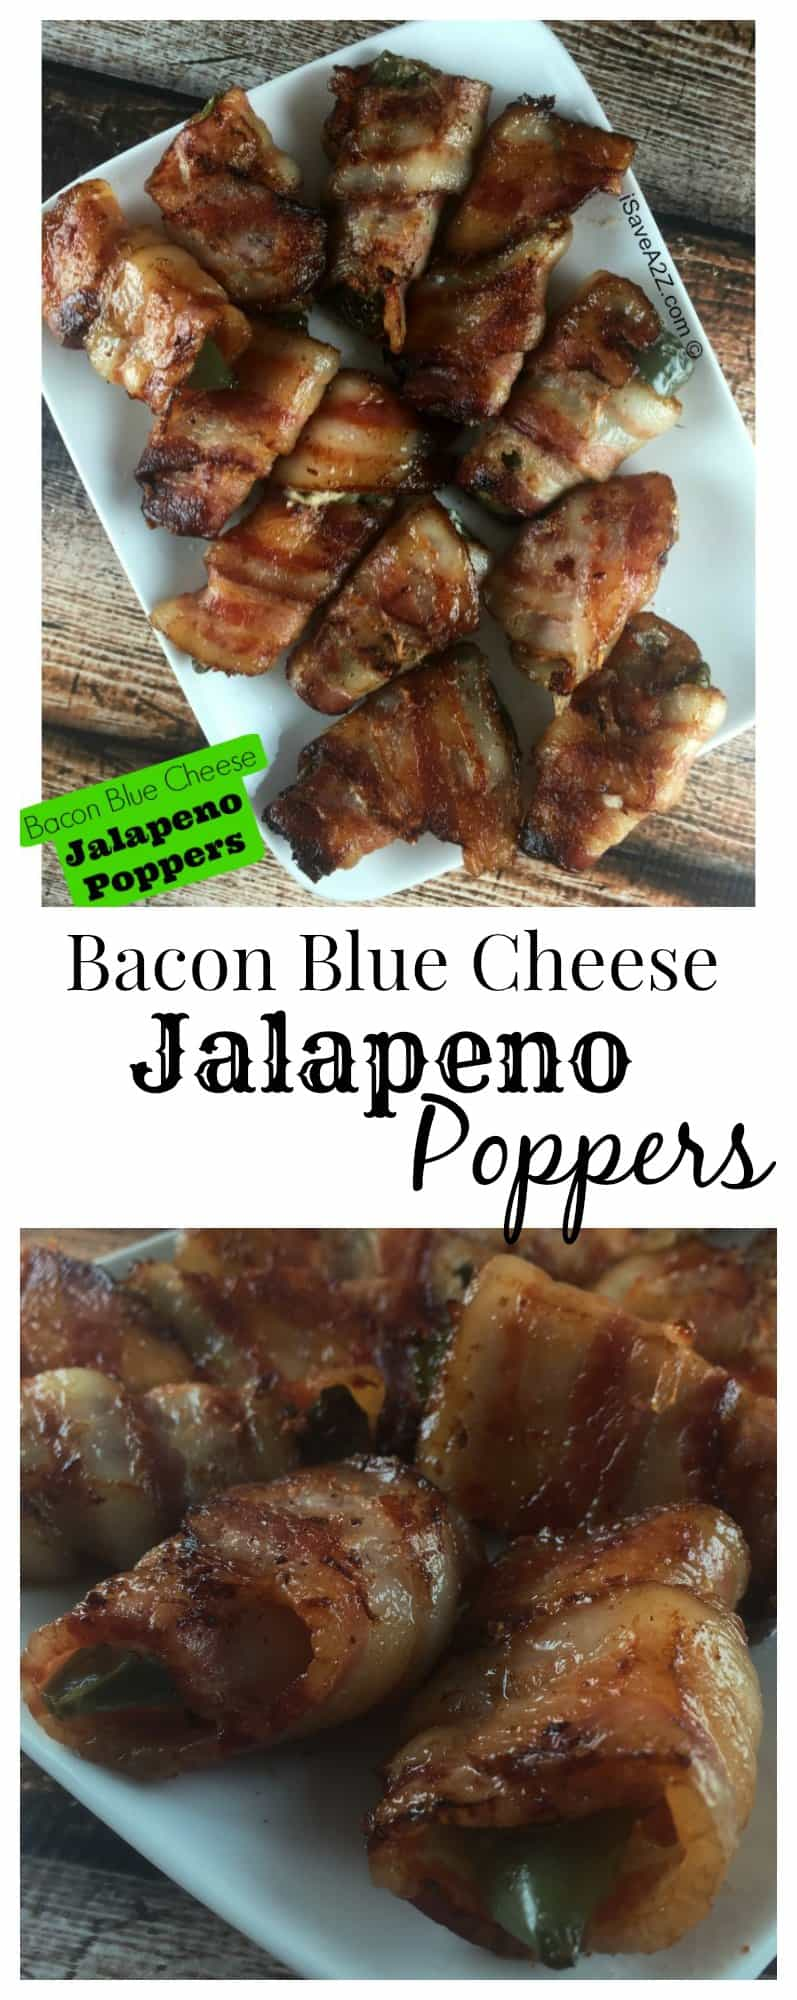 Bacon Blue Cheese Jalapeno Poppers Recipe